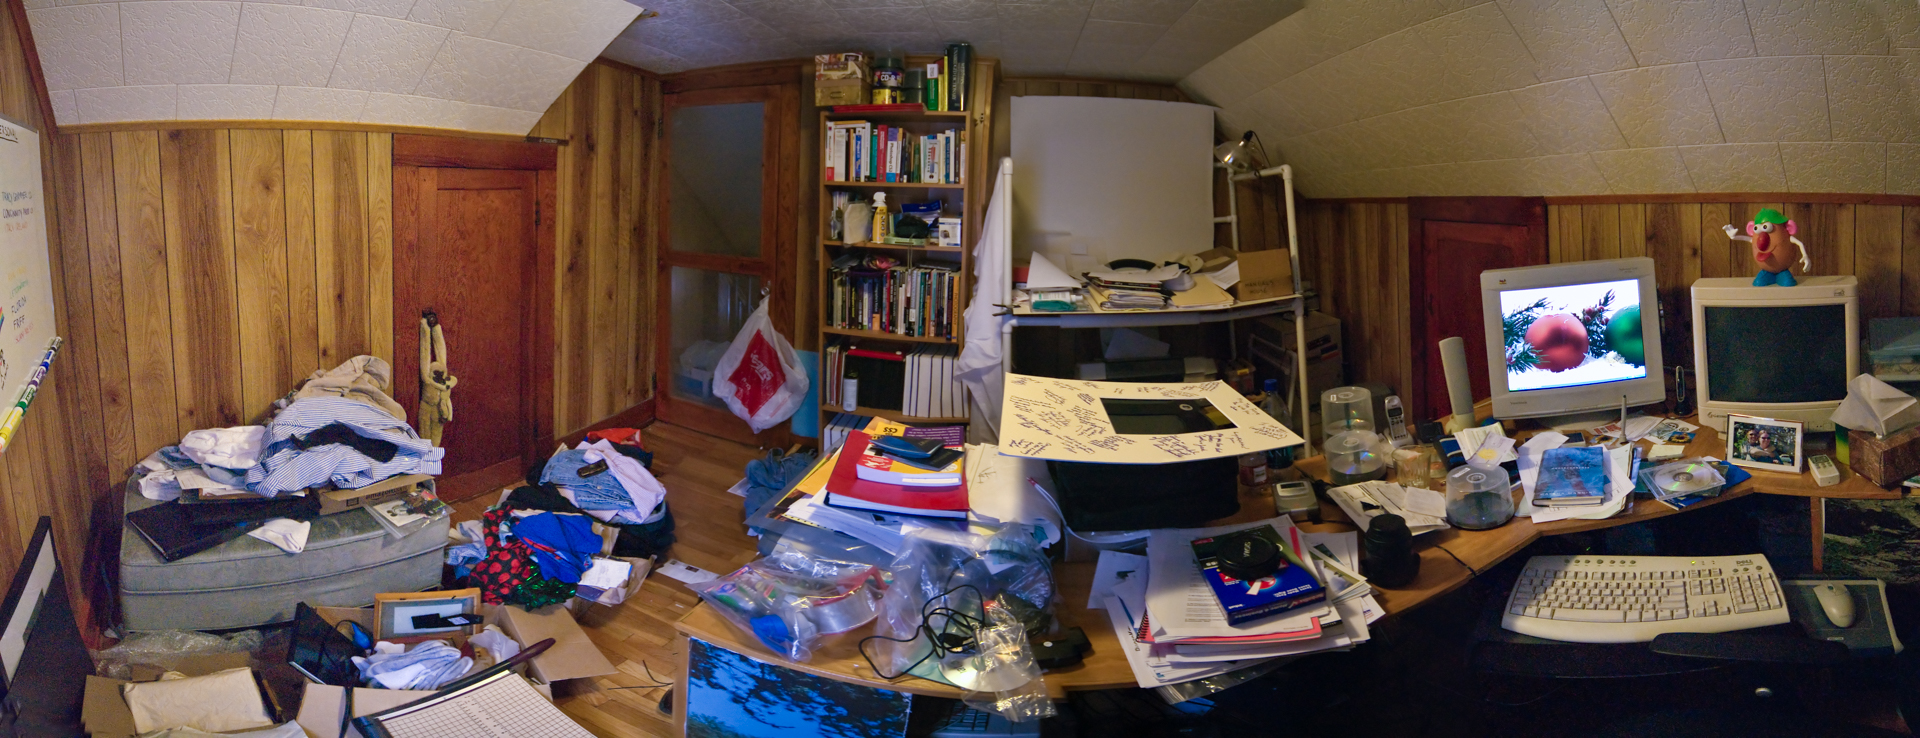 Stuff, Stuff and More Stuff: Overwhelmed By Clutter - Reaching for Less